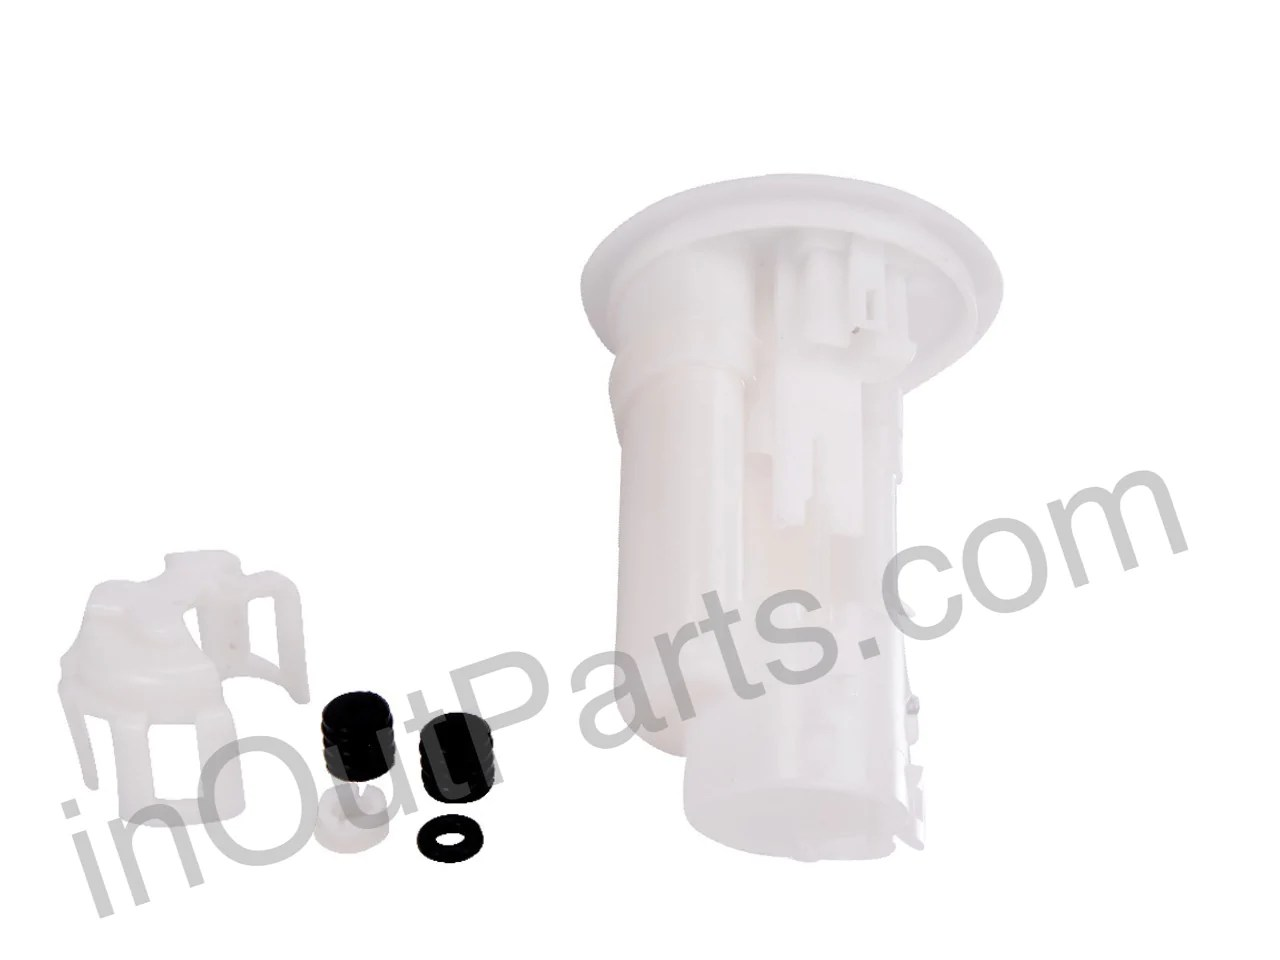 medium resolution of fuel filter fits honda inspire accord usa uc1 2003 2004 2005 2006 20 inout parts